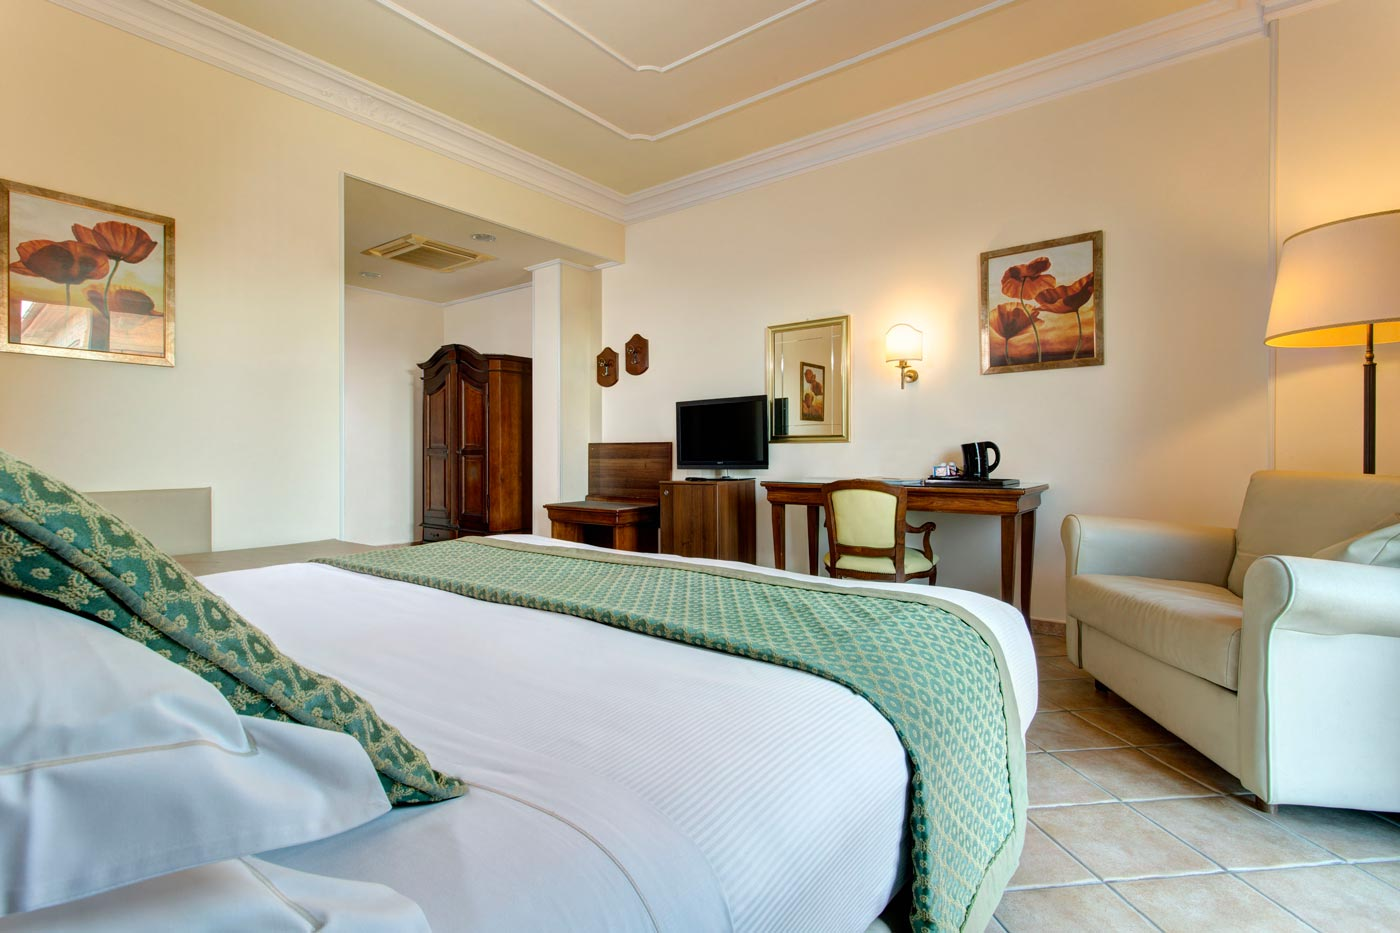 Executive Zimmer in Siena - Hotel Athena Siena – Traumhafter ...